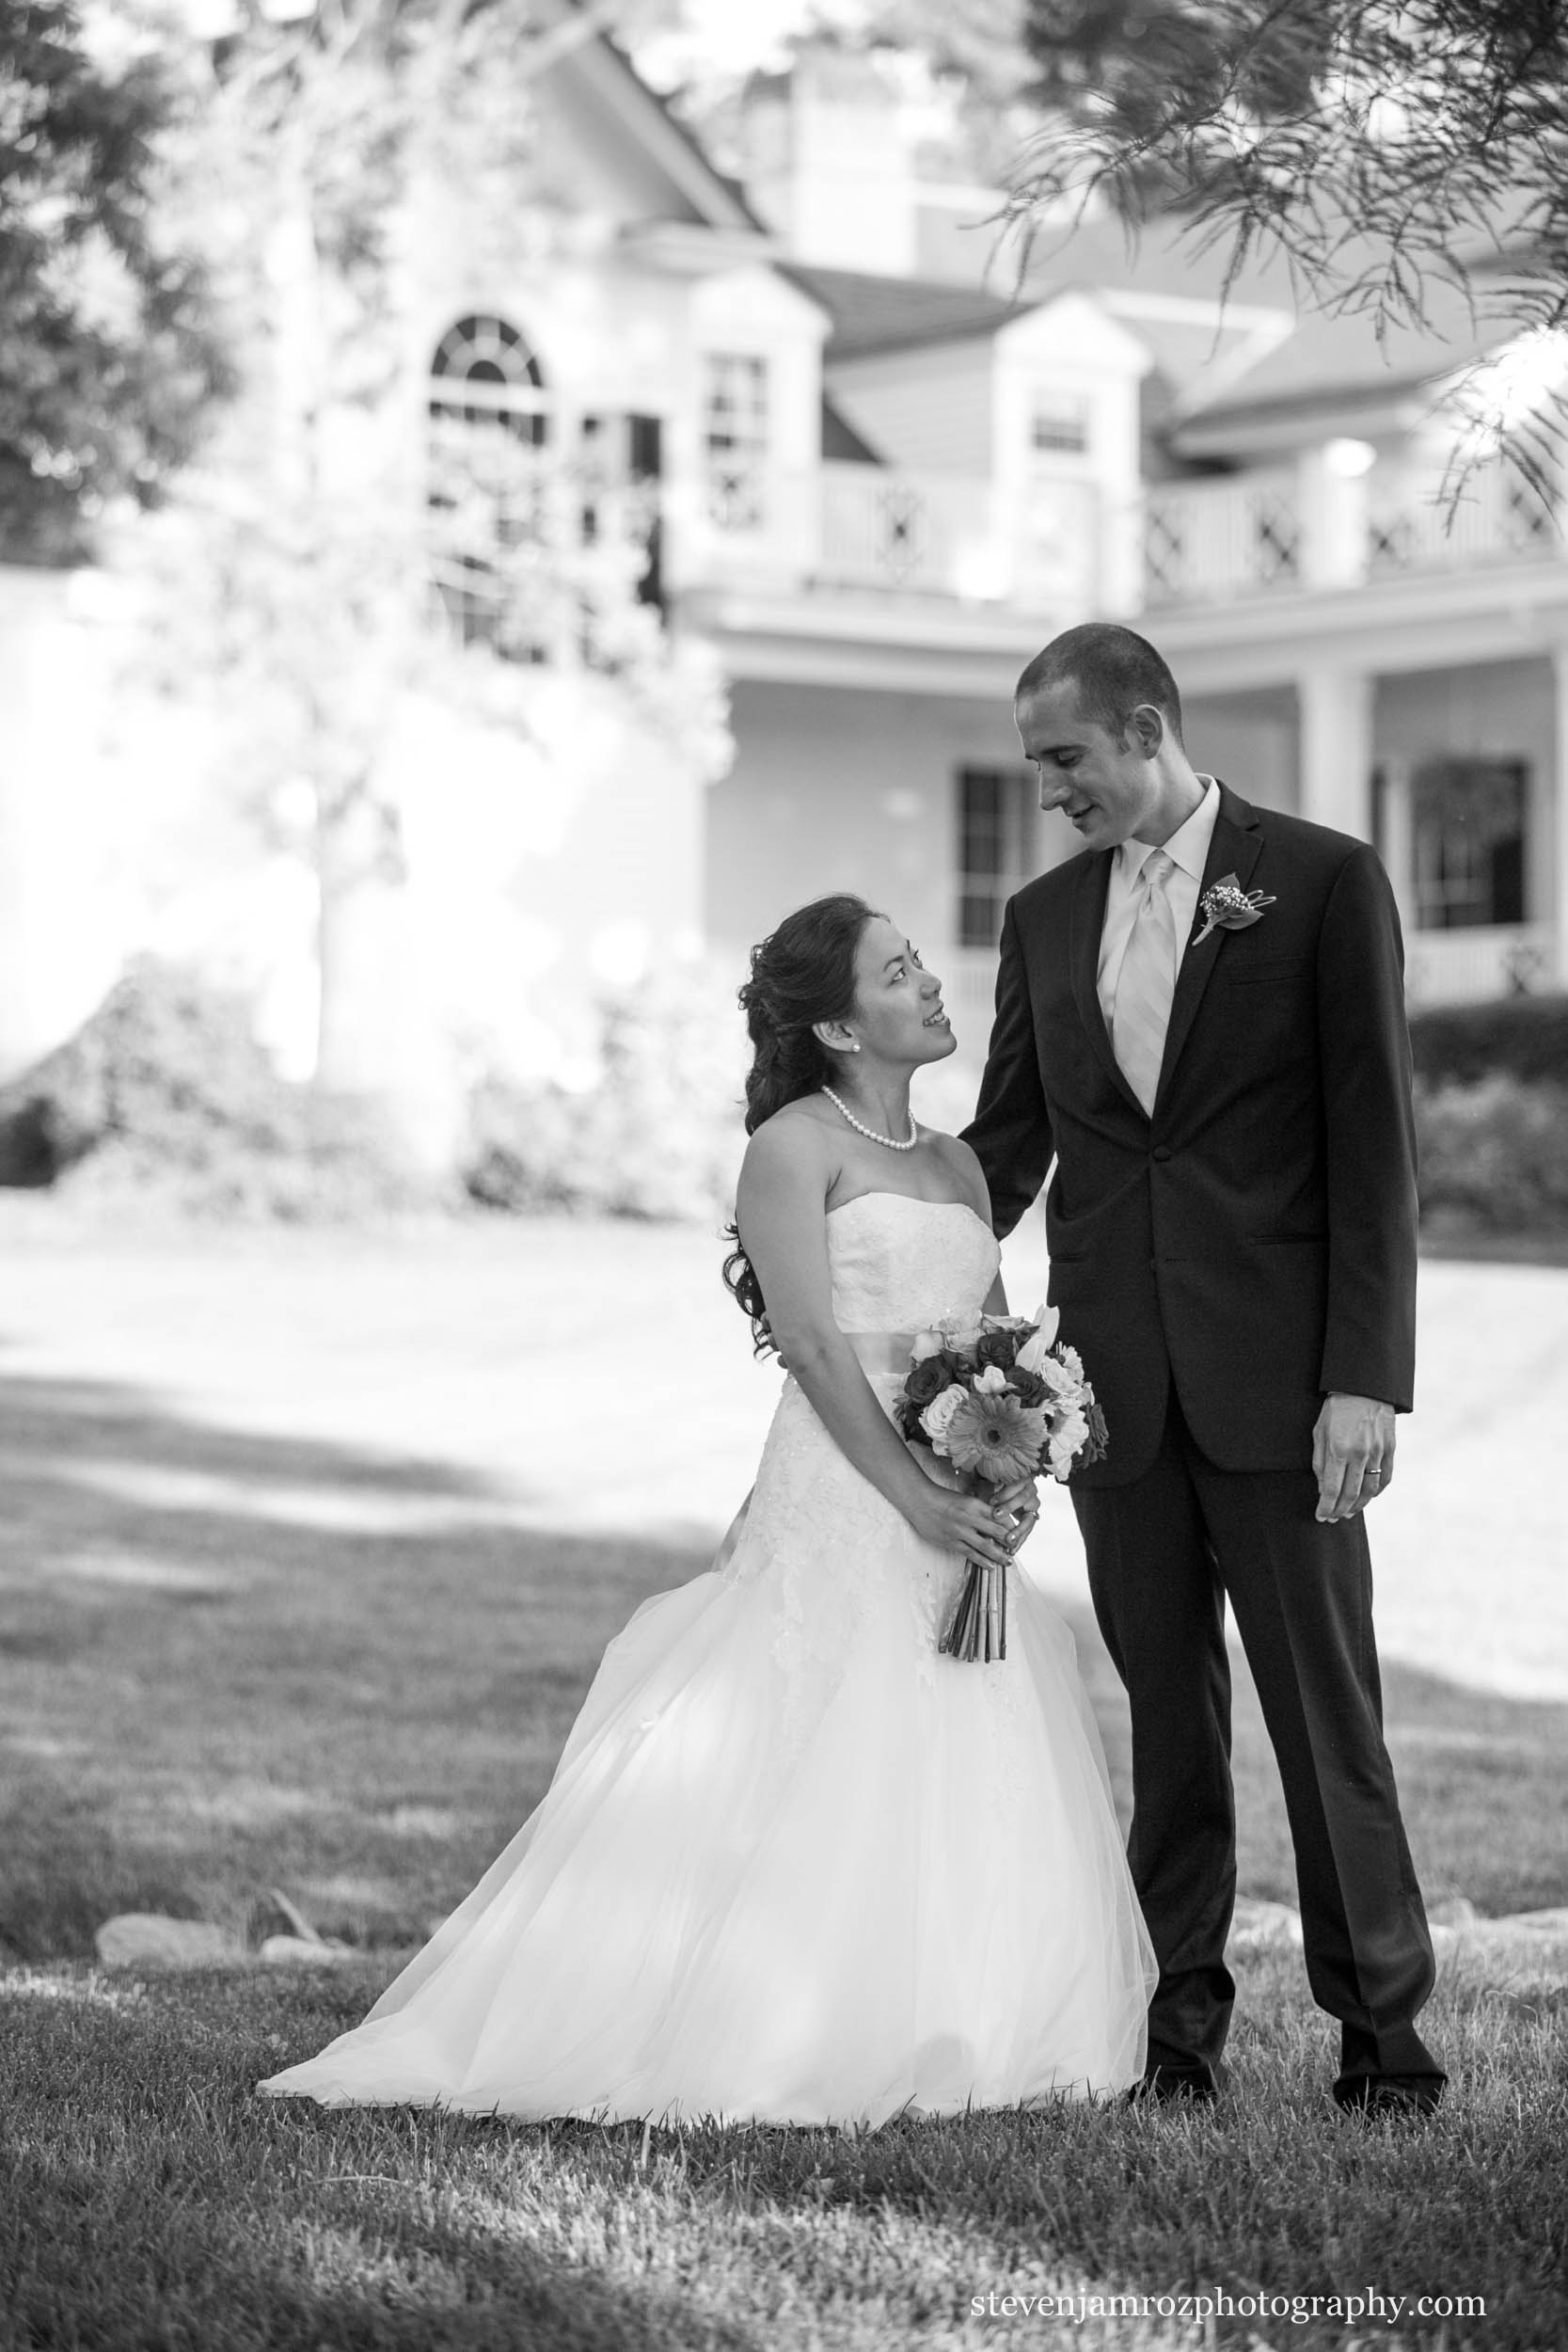 couple-rose-hill-plantation-wedding-nc-steven-jamroz-photography-0153.jpg